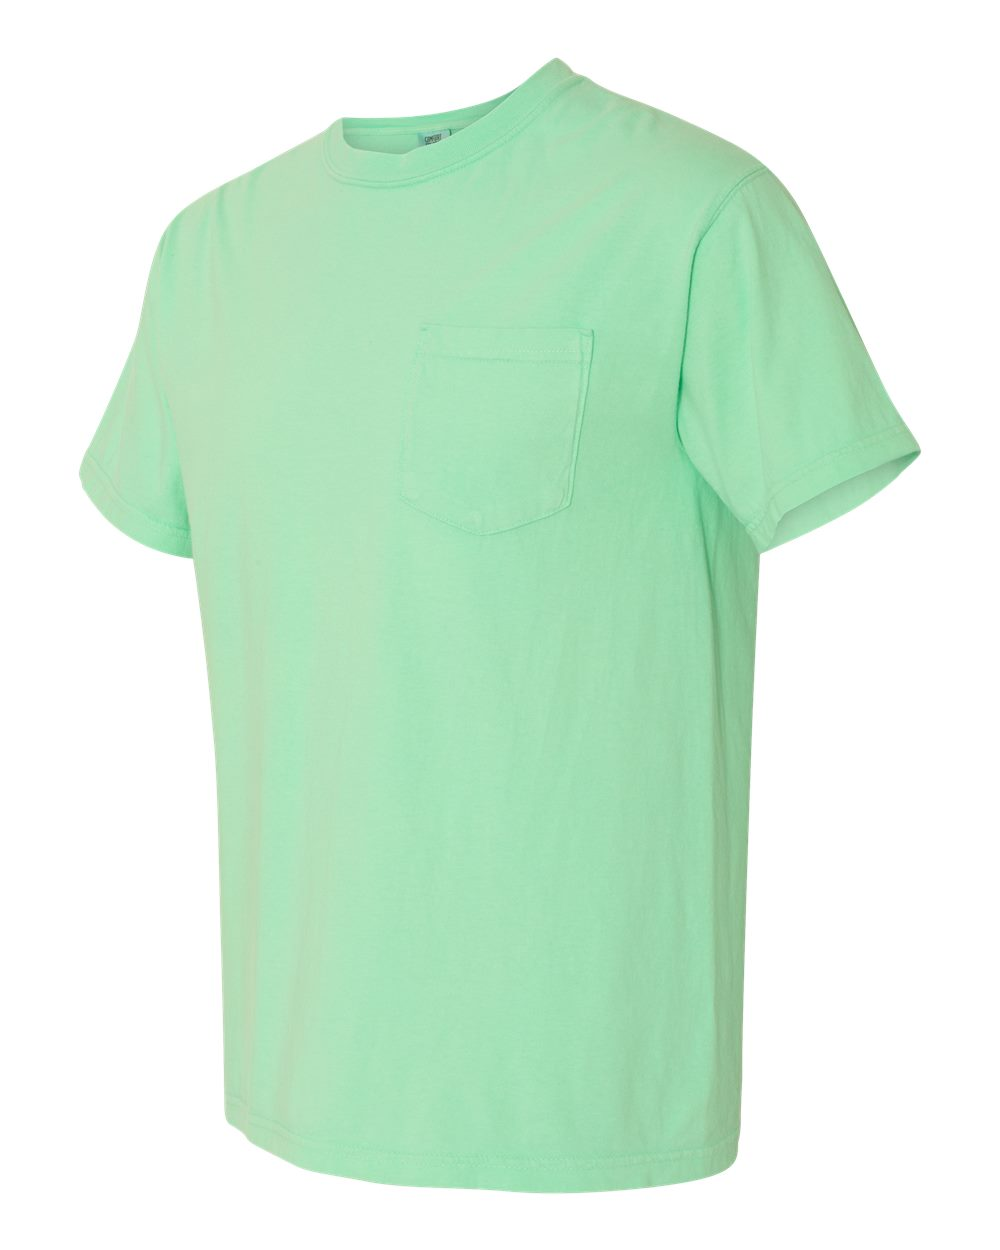 Comfort-Colors-Men-039-s-6-1-oz-Garment-Dyed-Pocket-T-Shirt-6030CC-S-3XL thumbnail 92